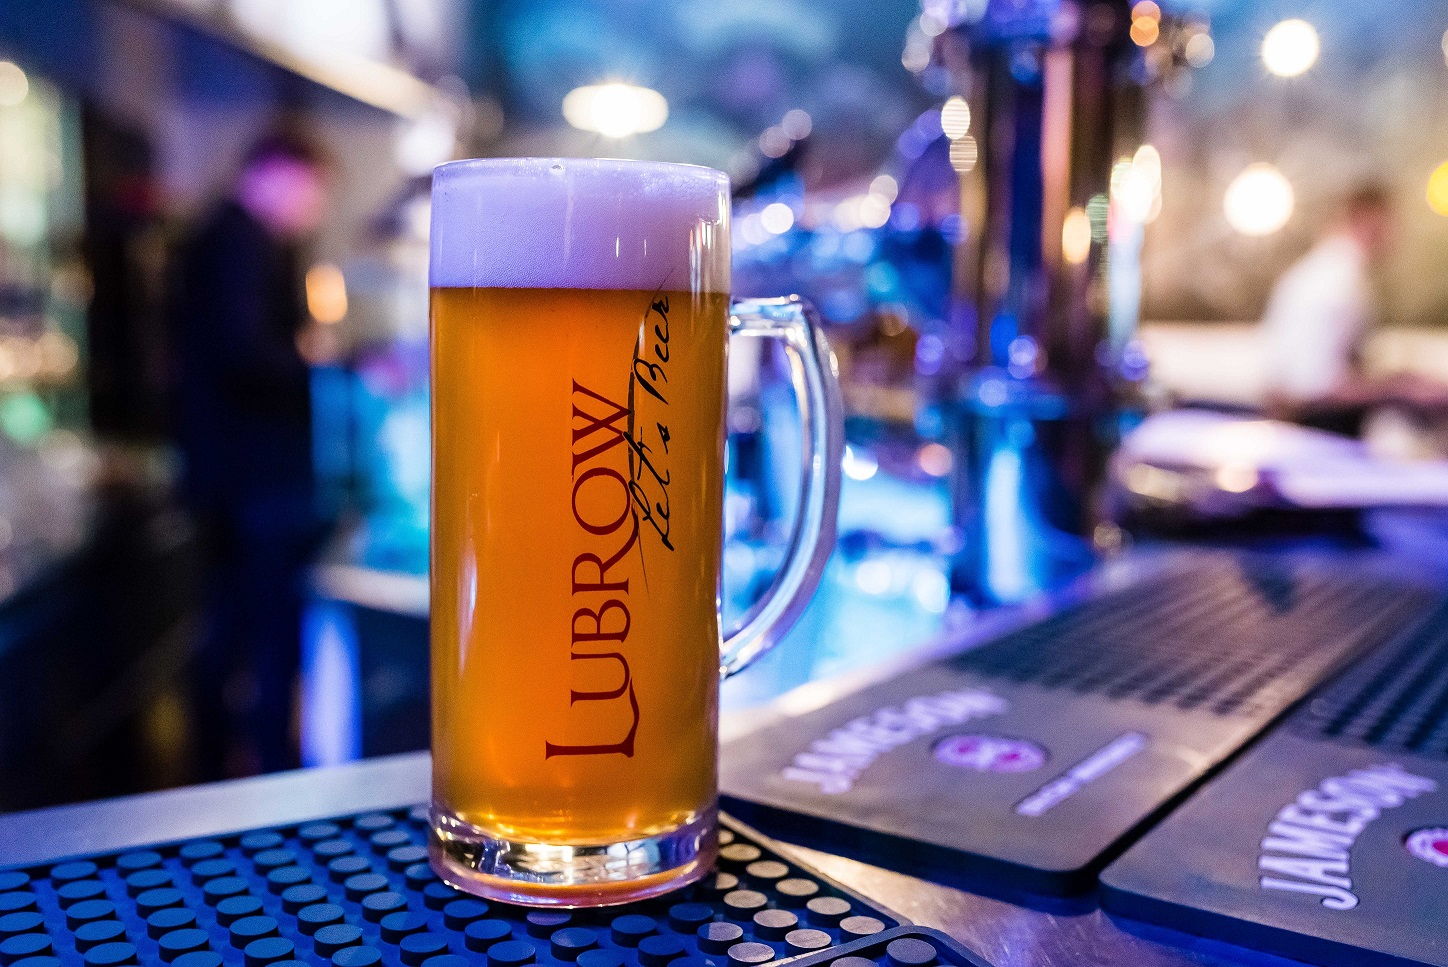 Browar Lubrow 13 1 - Lubrow Brewery. For the love of beer